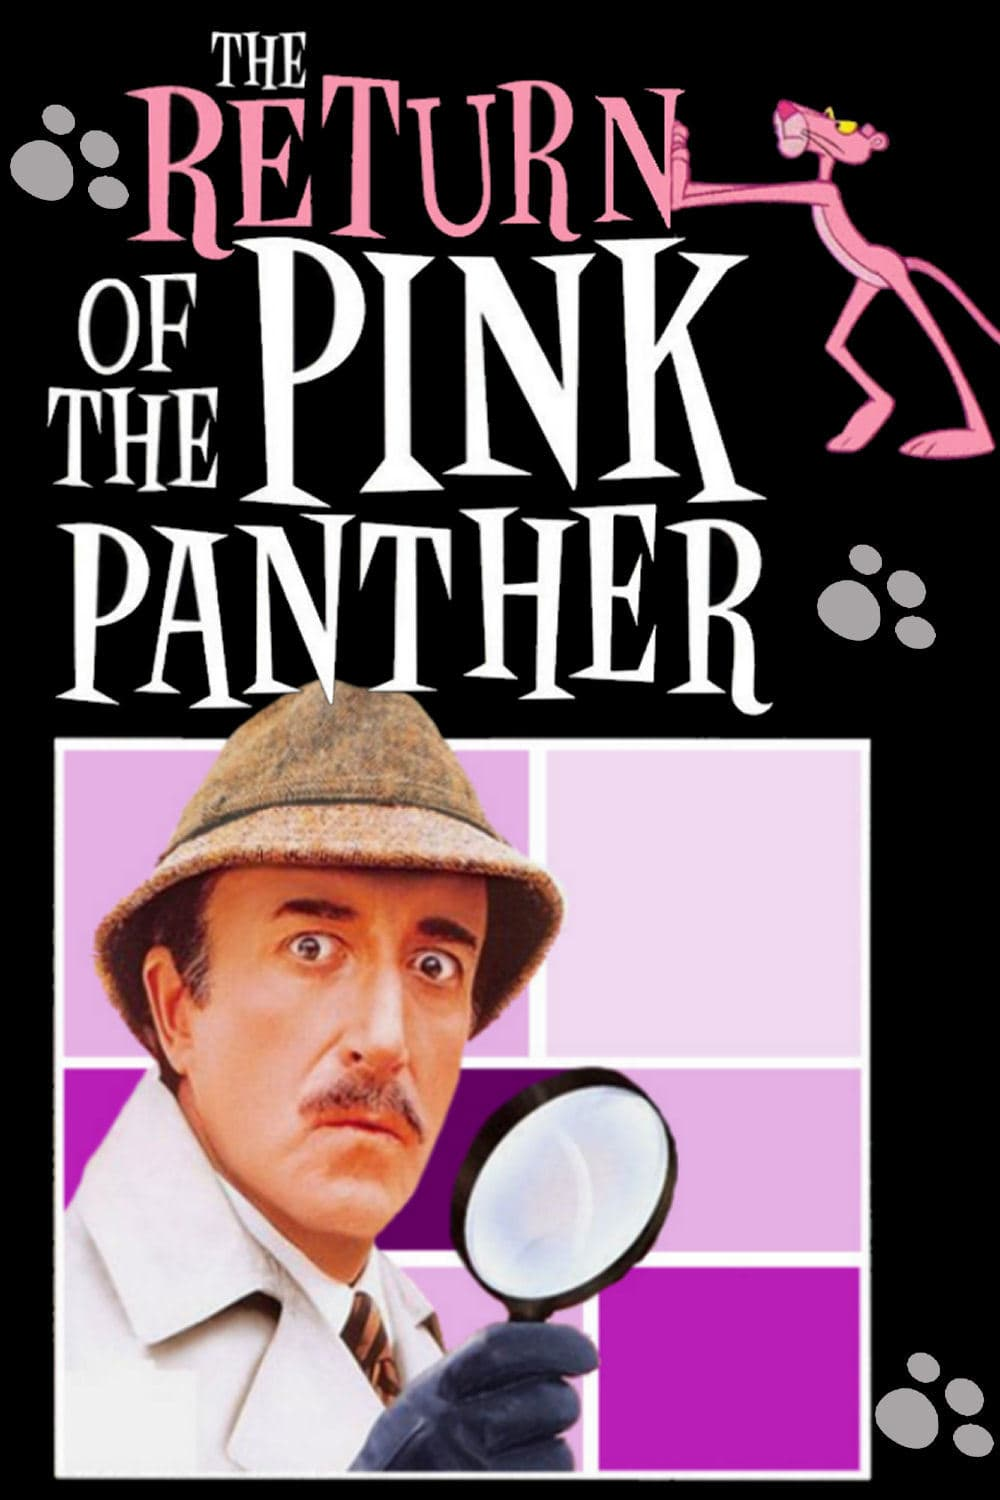 The Return of the Pink Panther kapak